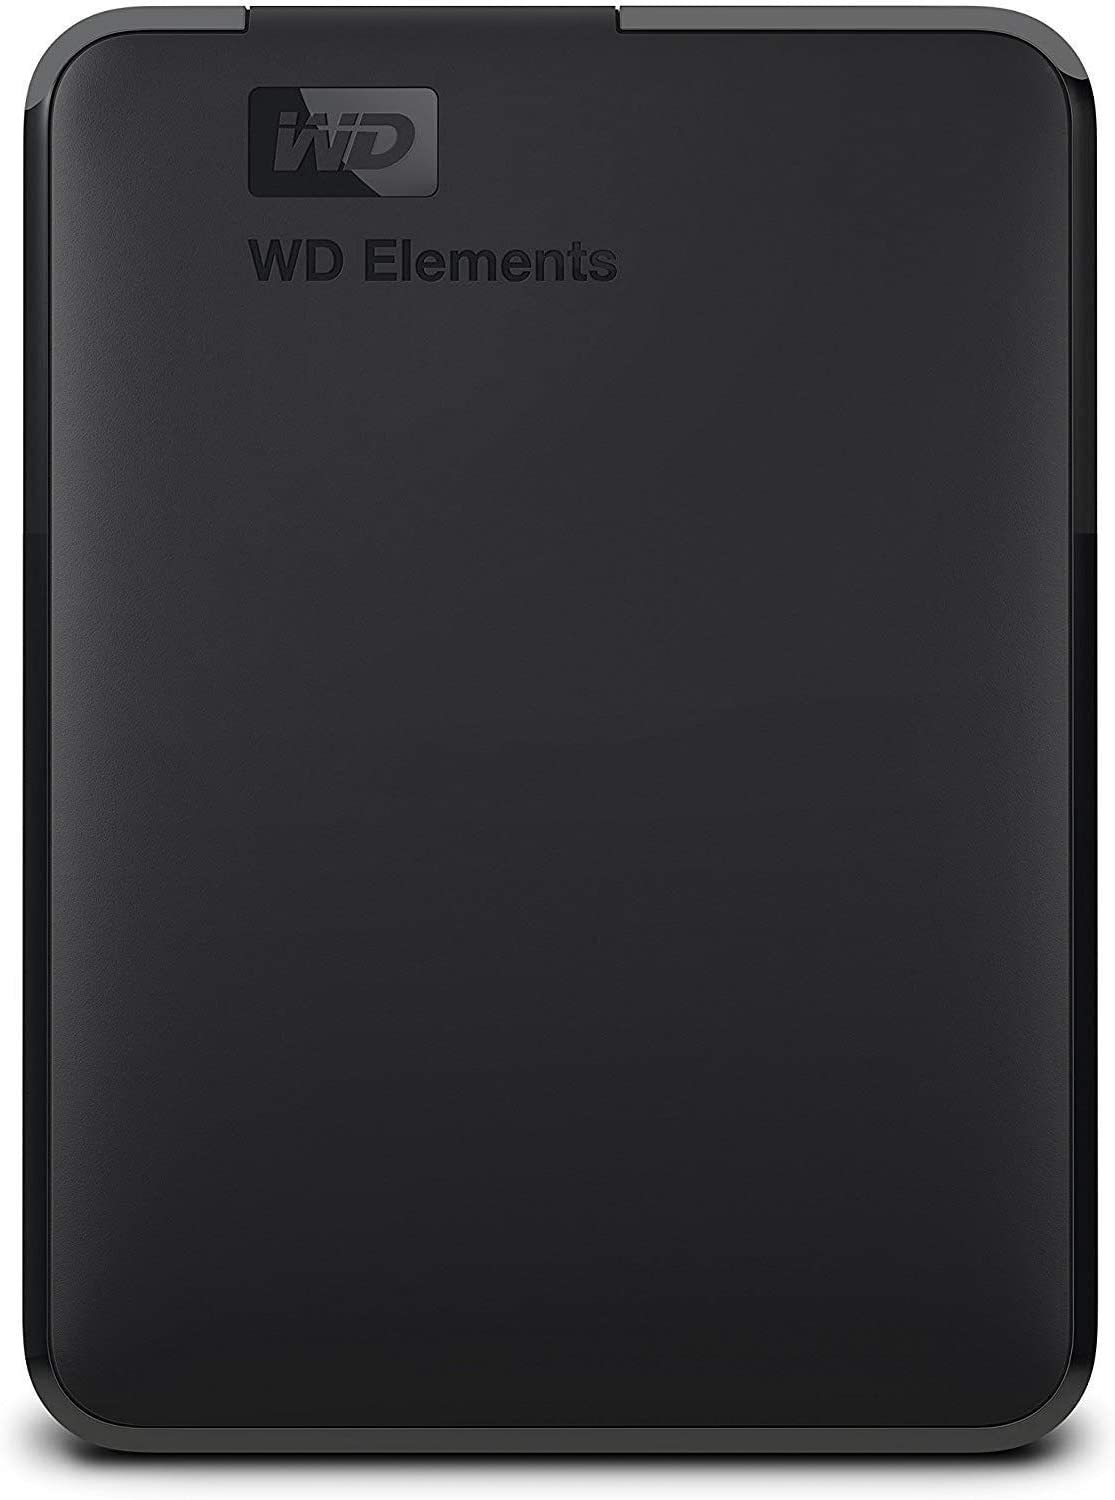 Western Digital WD Elements Hard Disk Esterno, Portatile, USB 3.0, 2 TB, Nero